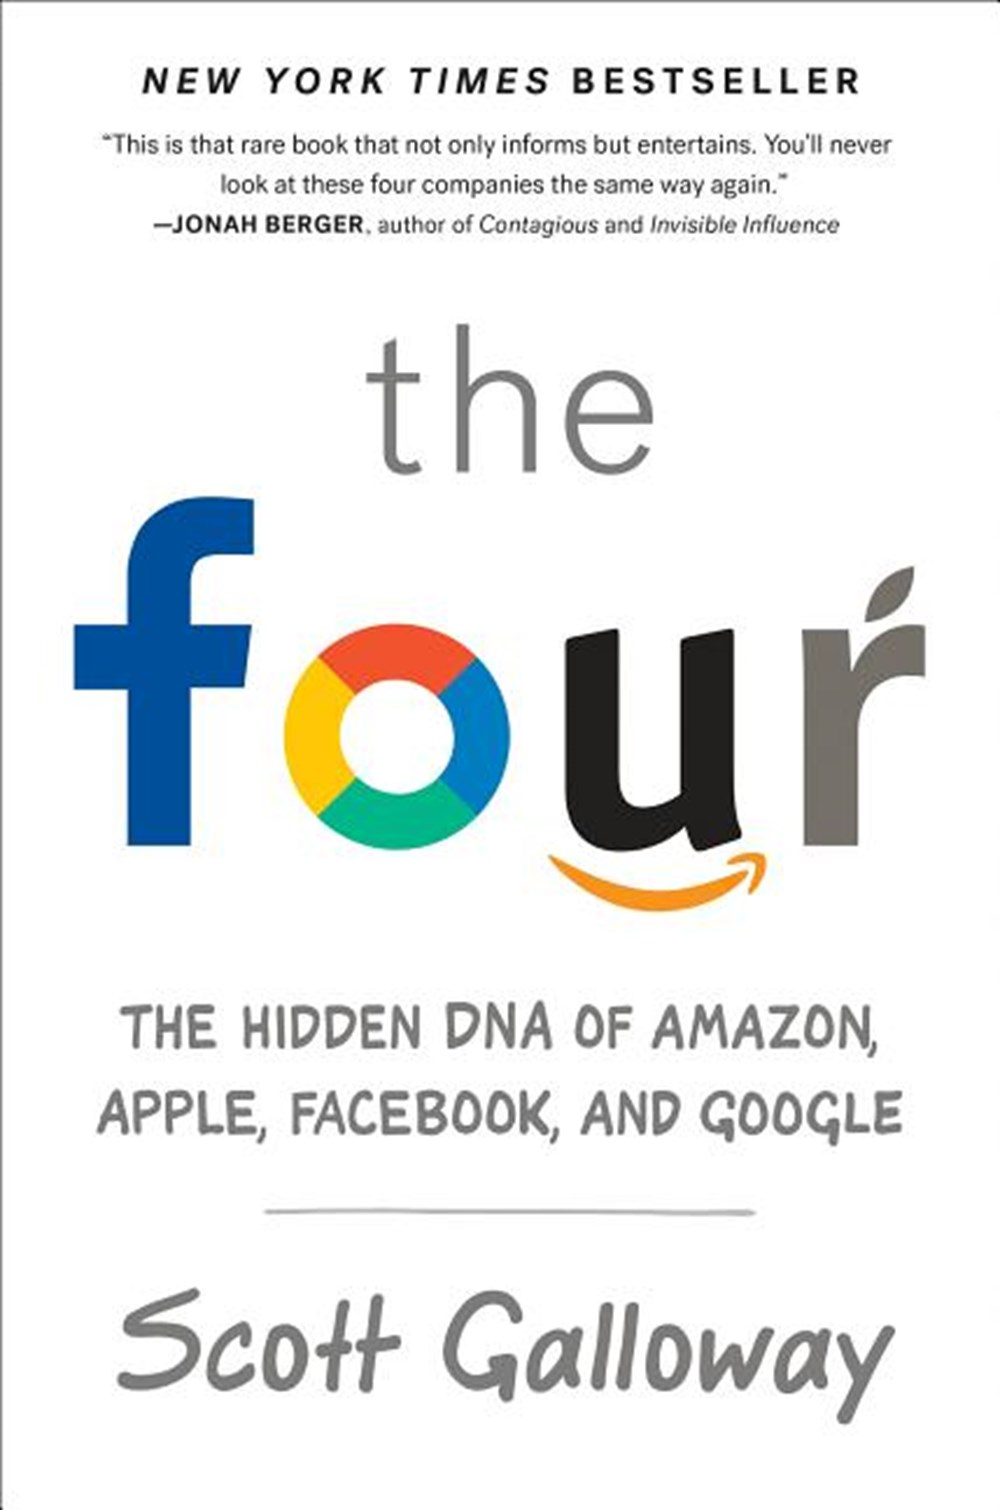 Four The Hidden DNA of Amazon, Apple, Facebook, and Google